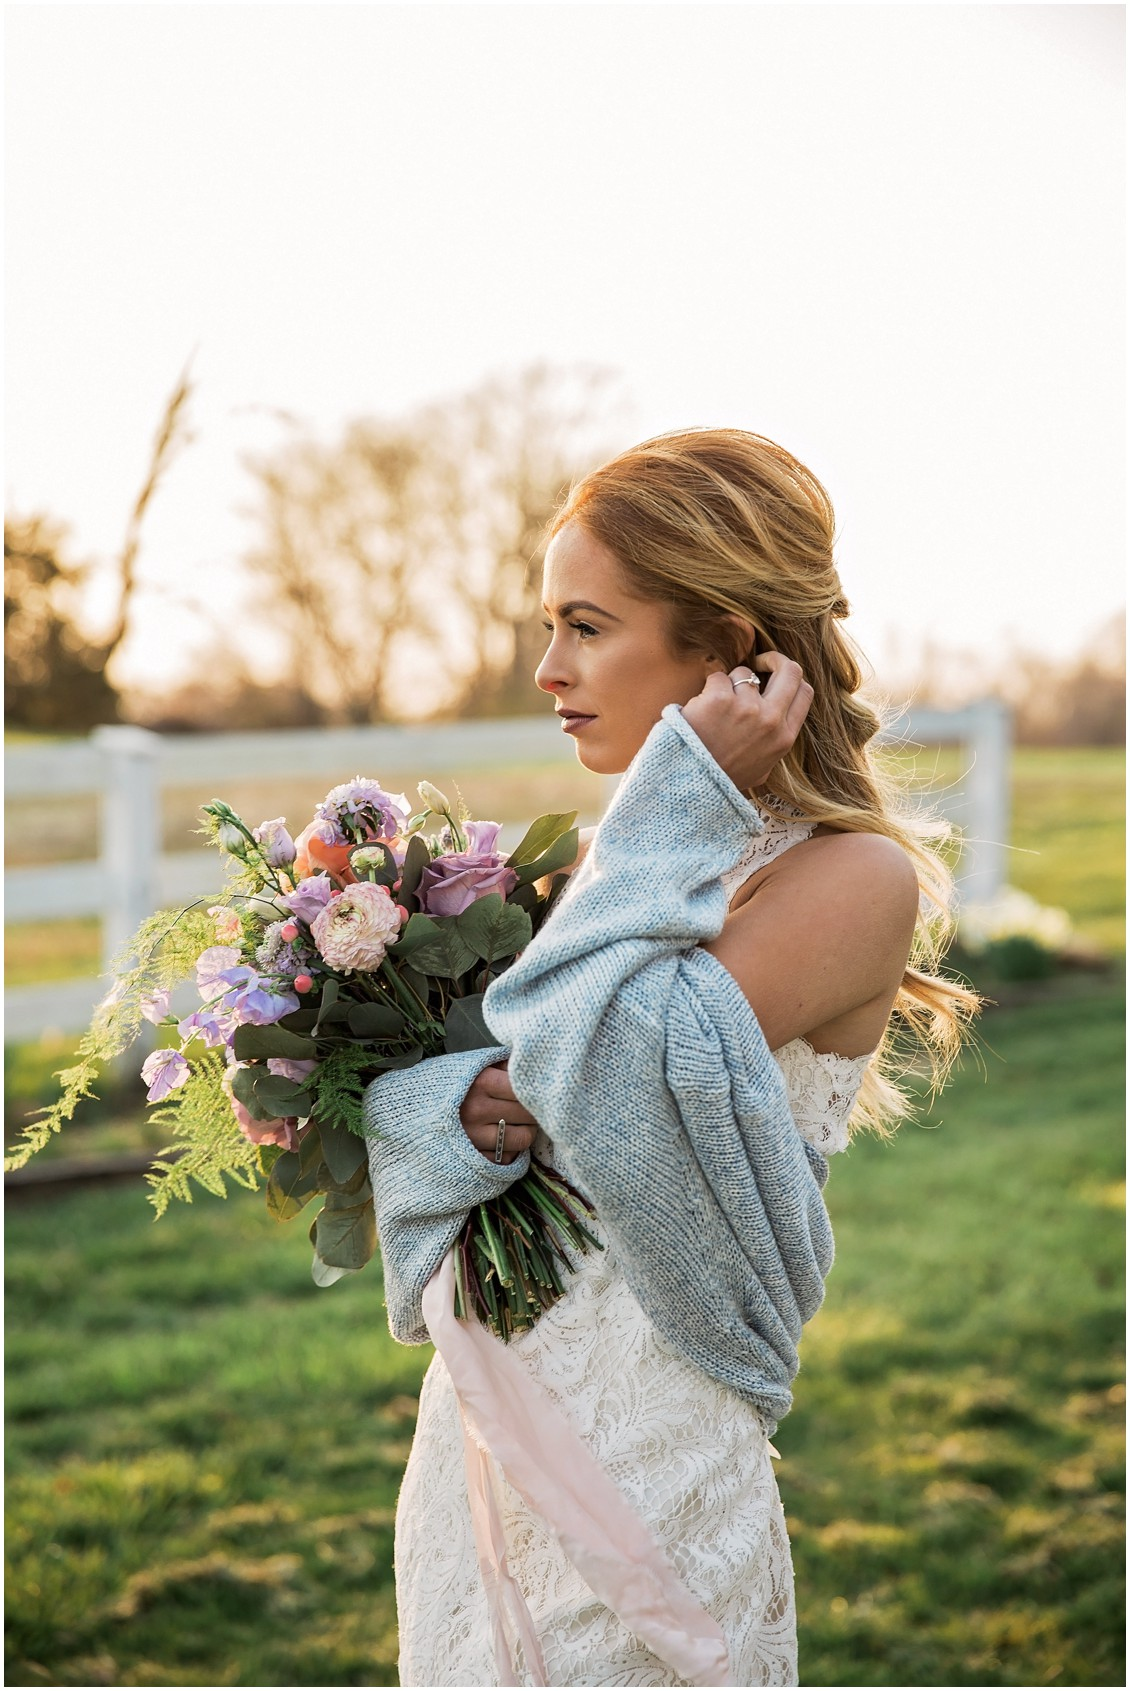 Beautiful bride poses with in chunky sweater for a Garden Party Wedding Styled-Shoot on Maryland's Eastern Shore